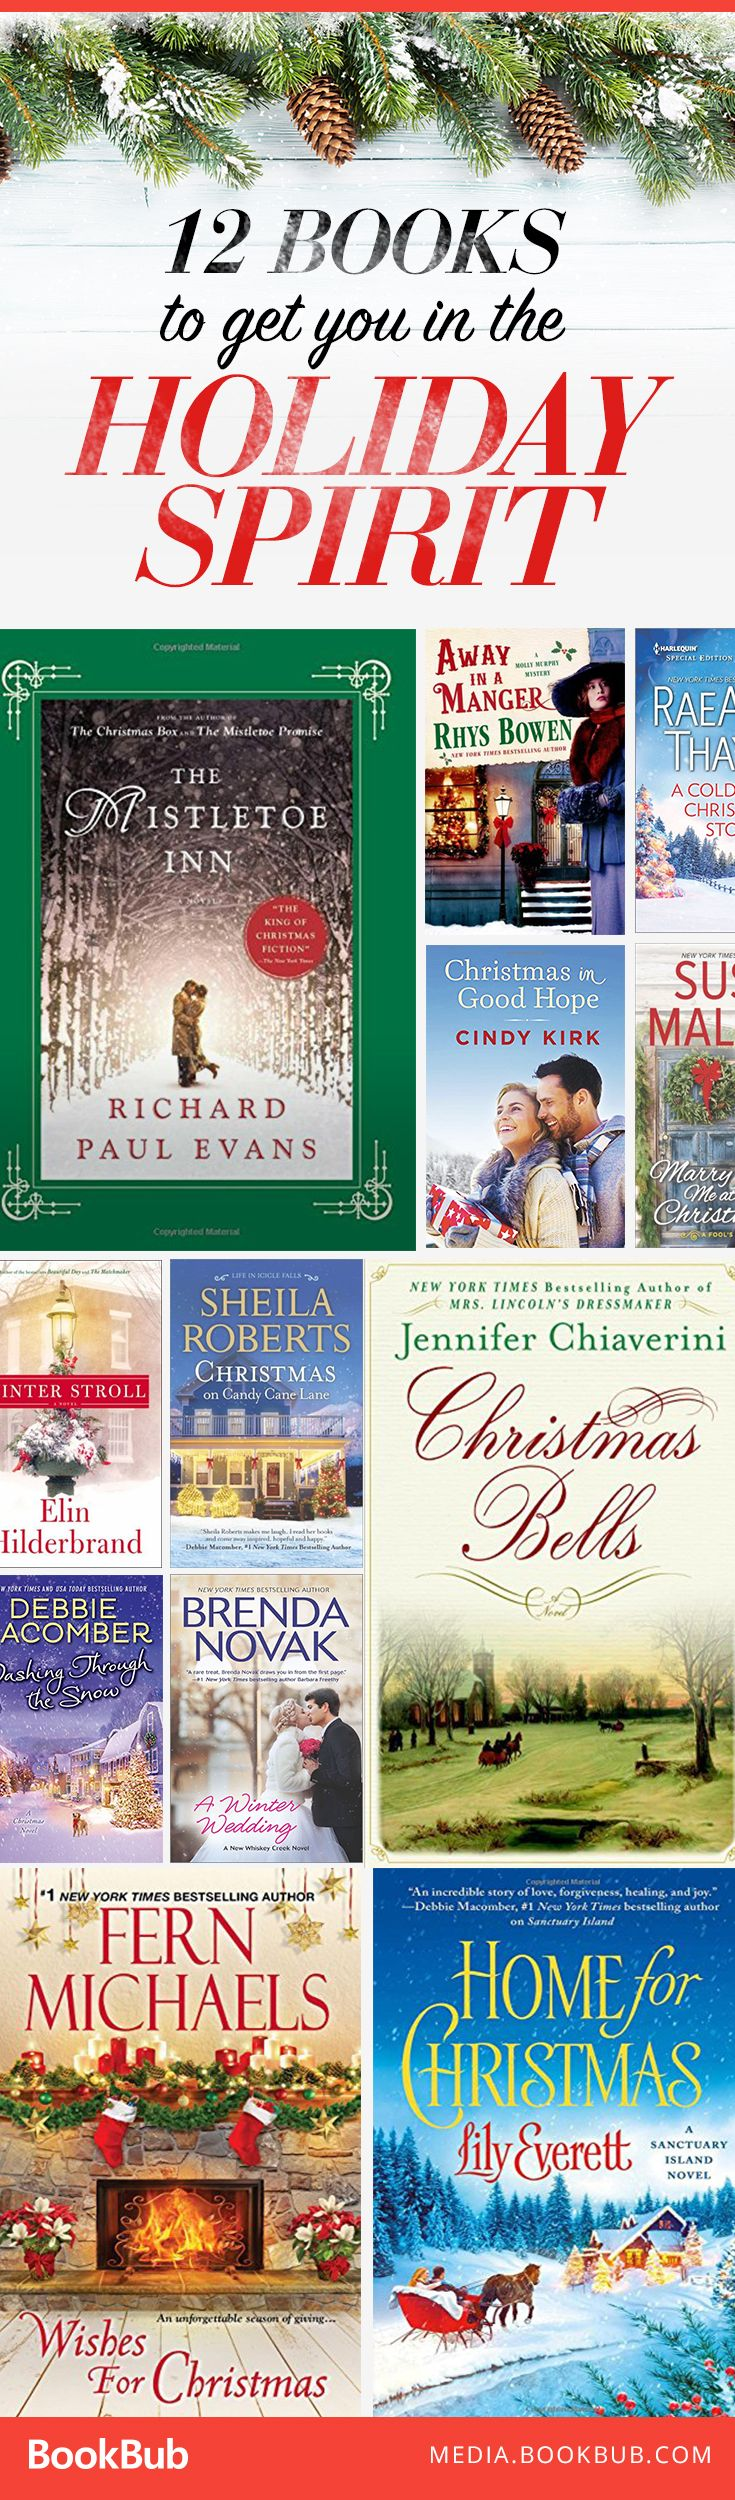 Get into the holiday spirit with these 12 new books.